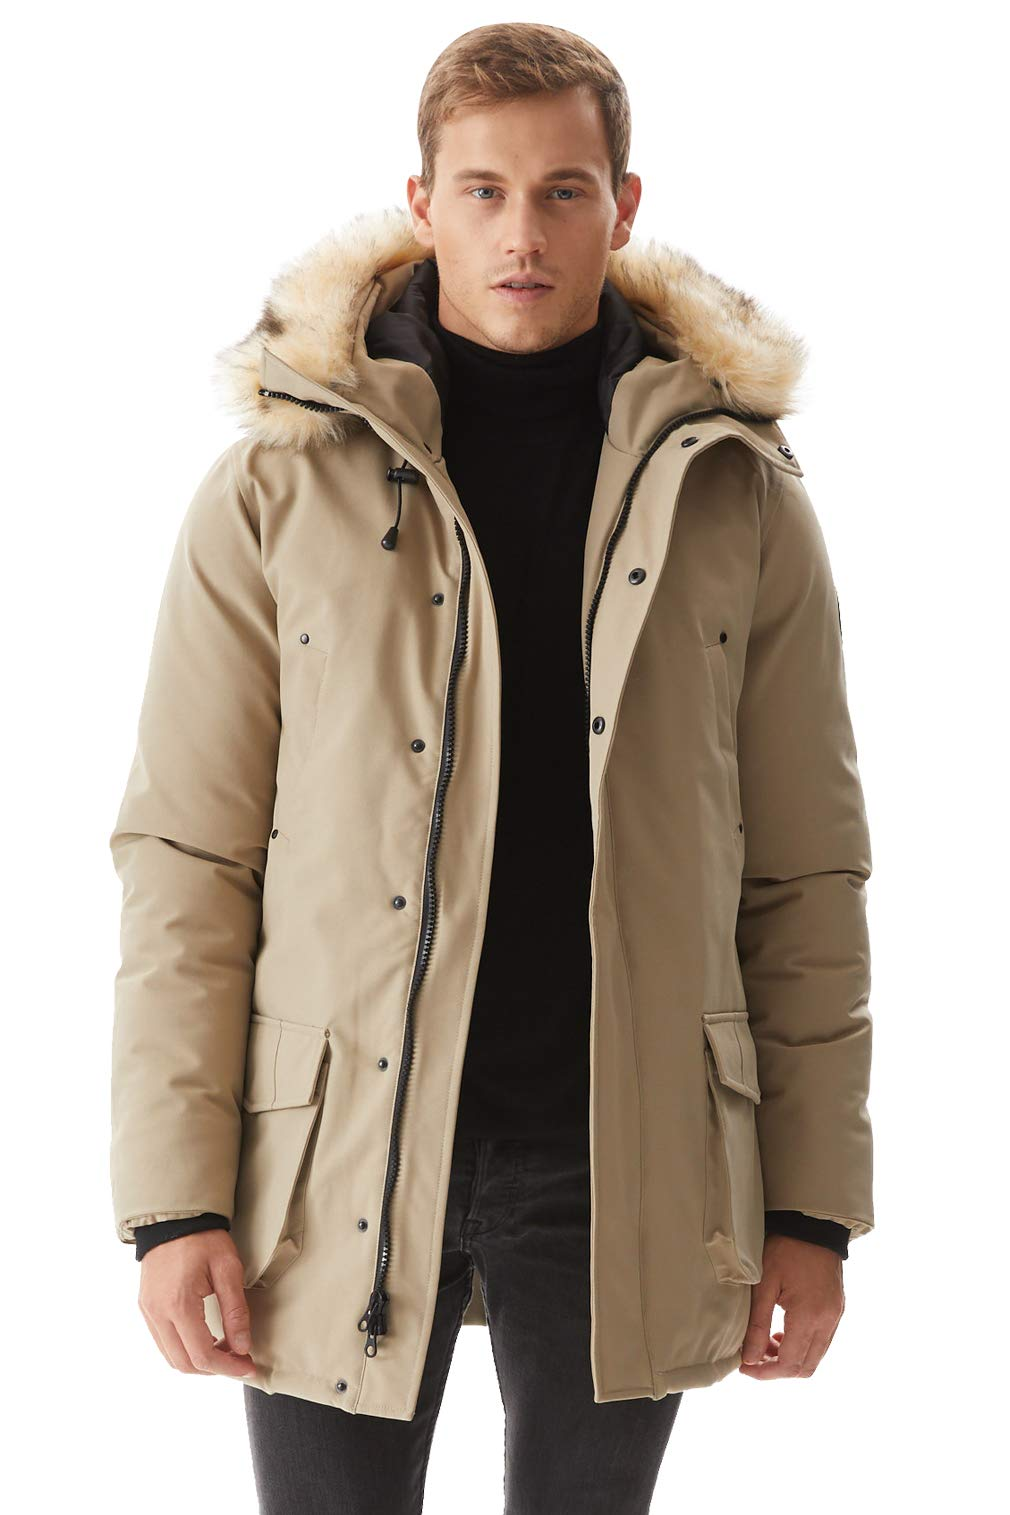 Molemsx Men Parka, Winter Jacket for Men, Men's Waterproof Heavyweight Warmest Parka Jacket with Trim Faux Fur Hood Mens Winter Arctic Coats Lined Padded Thicken Fashion Coat for Club Beige XXX-Large by Molemsx